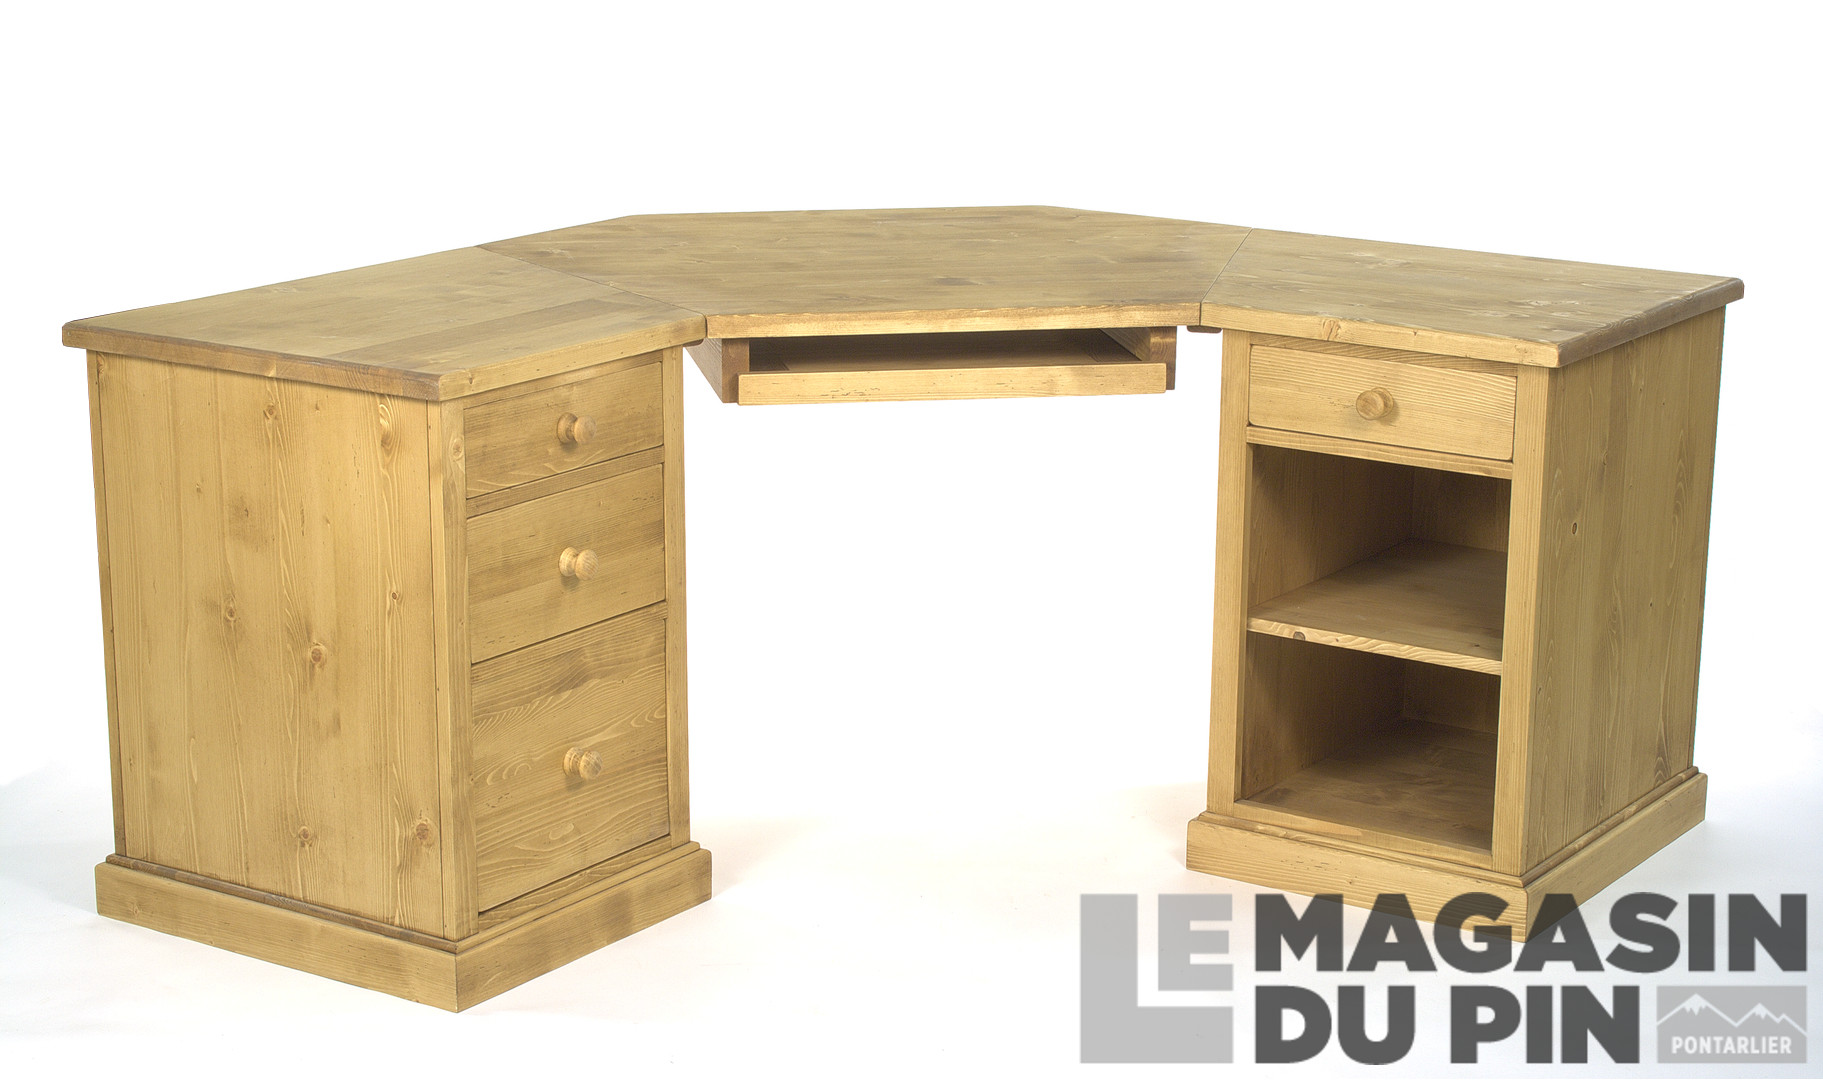 Bureau dangle en pin massif Chamonix Le Magasin du Pin